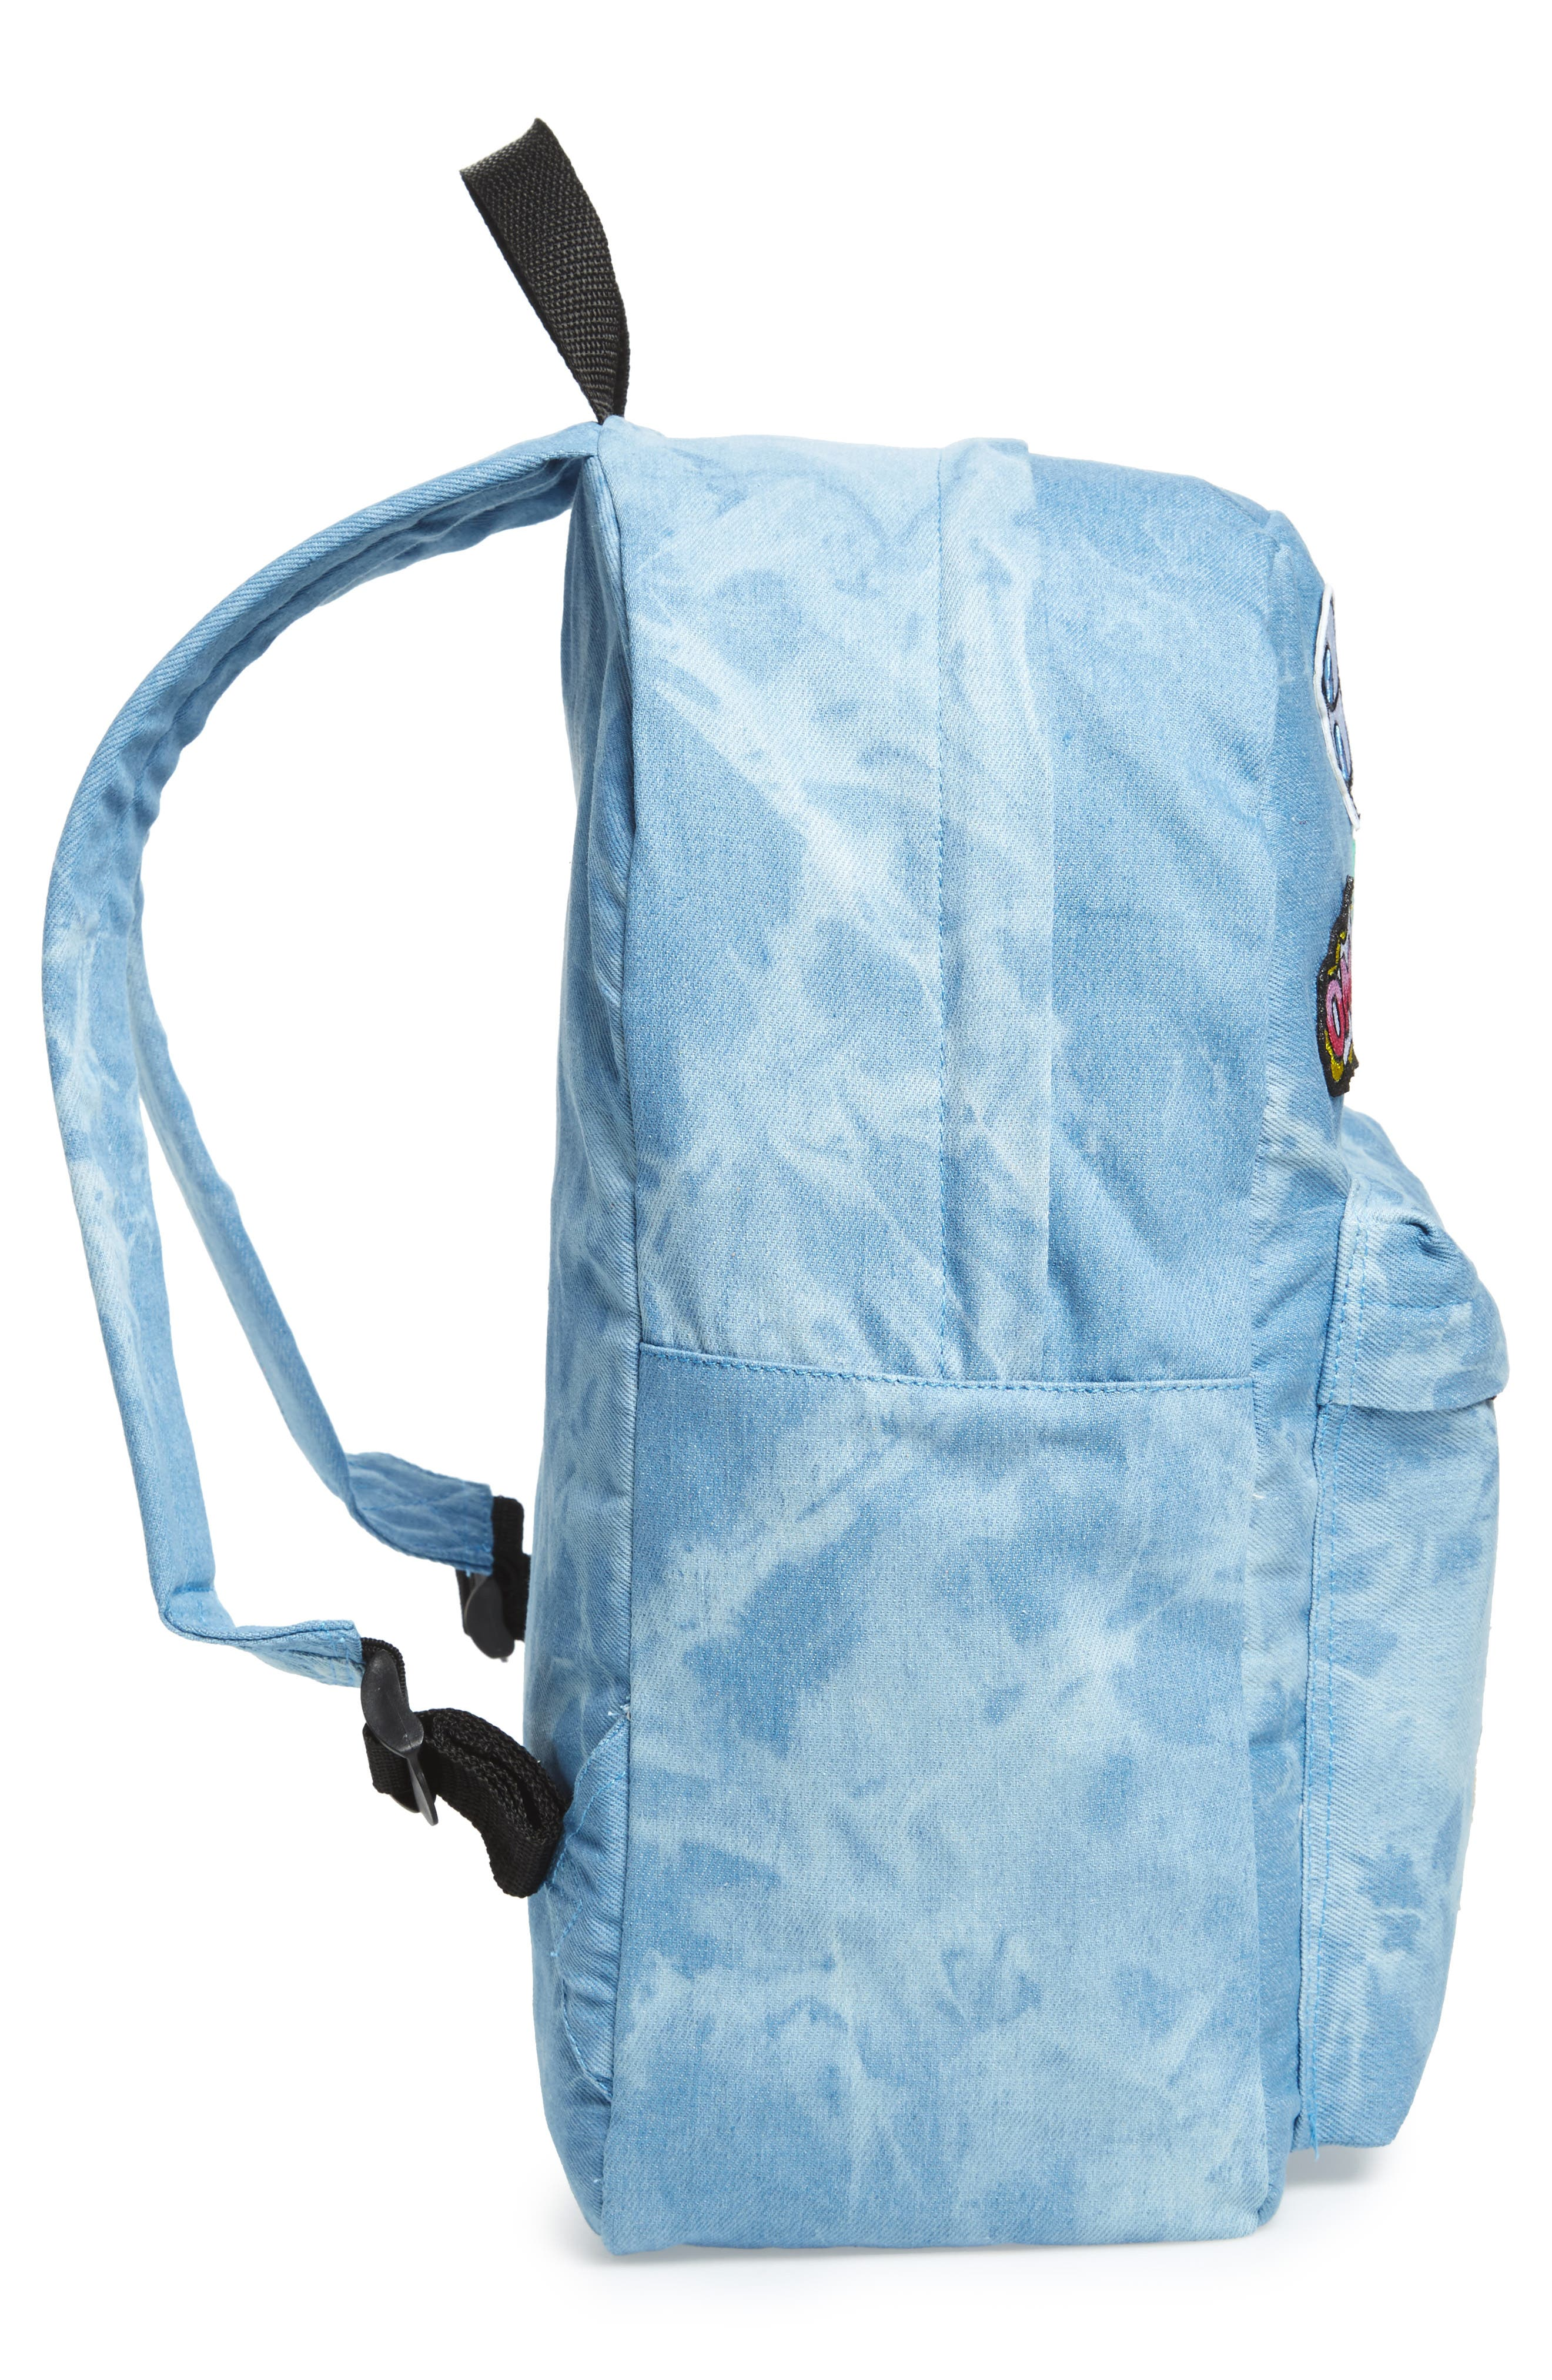 Accessory Collective Tie Dye Backpack,                             Alternate thumbnail 3, color,                             Blue